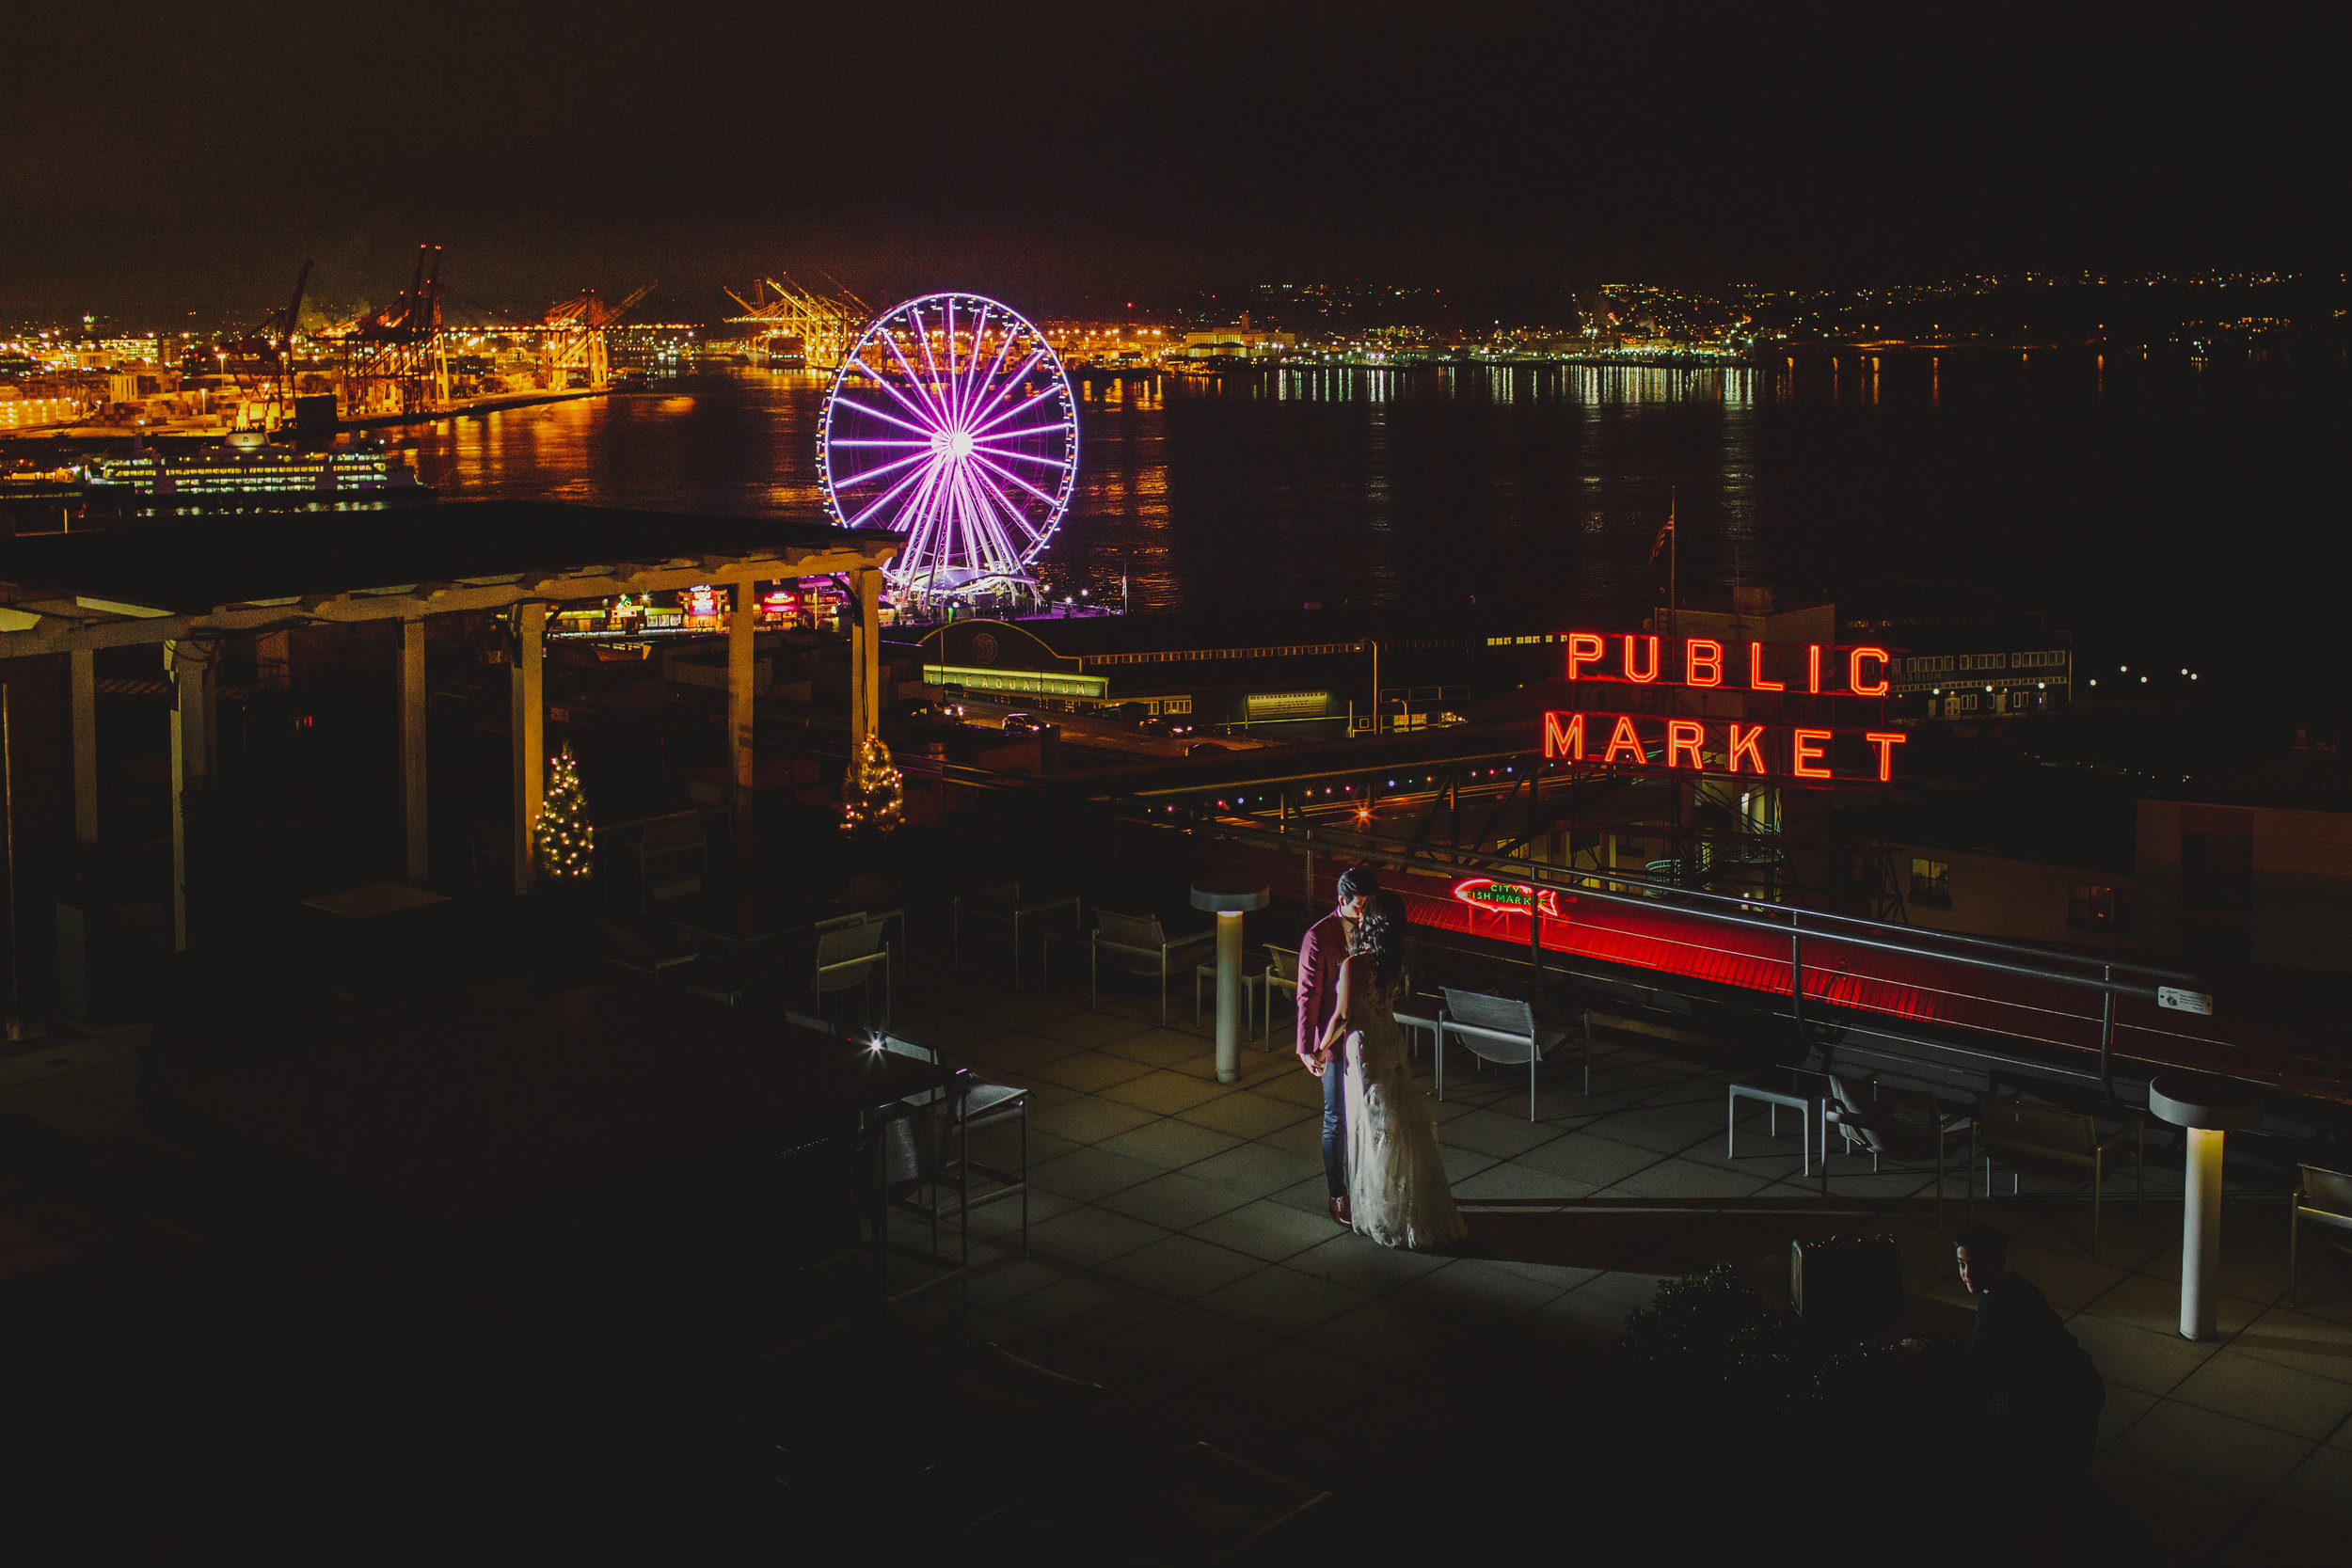 pikeplacemarketwedding_kristawelch-0001.jpg